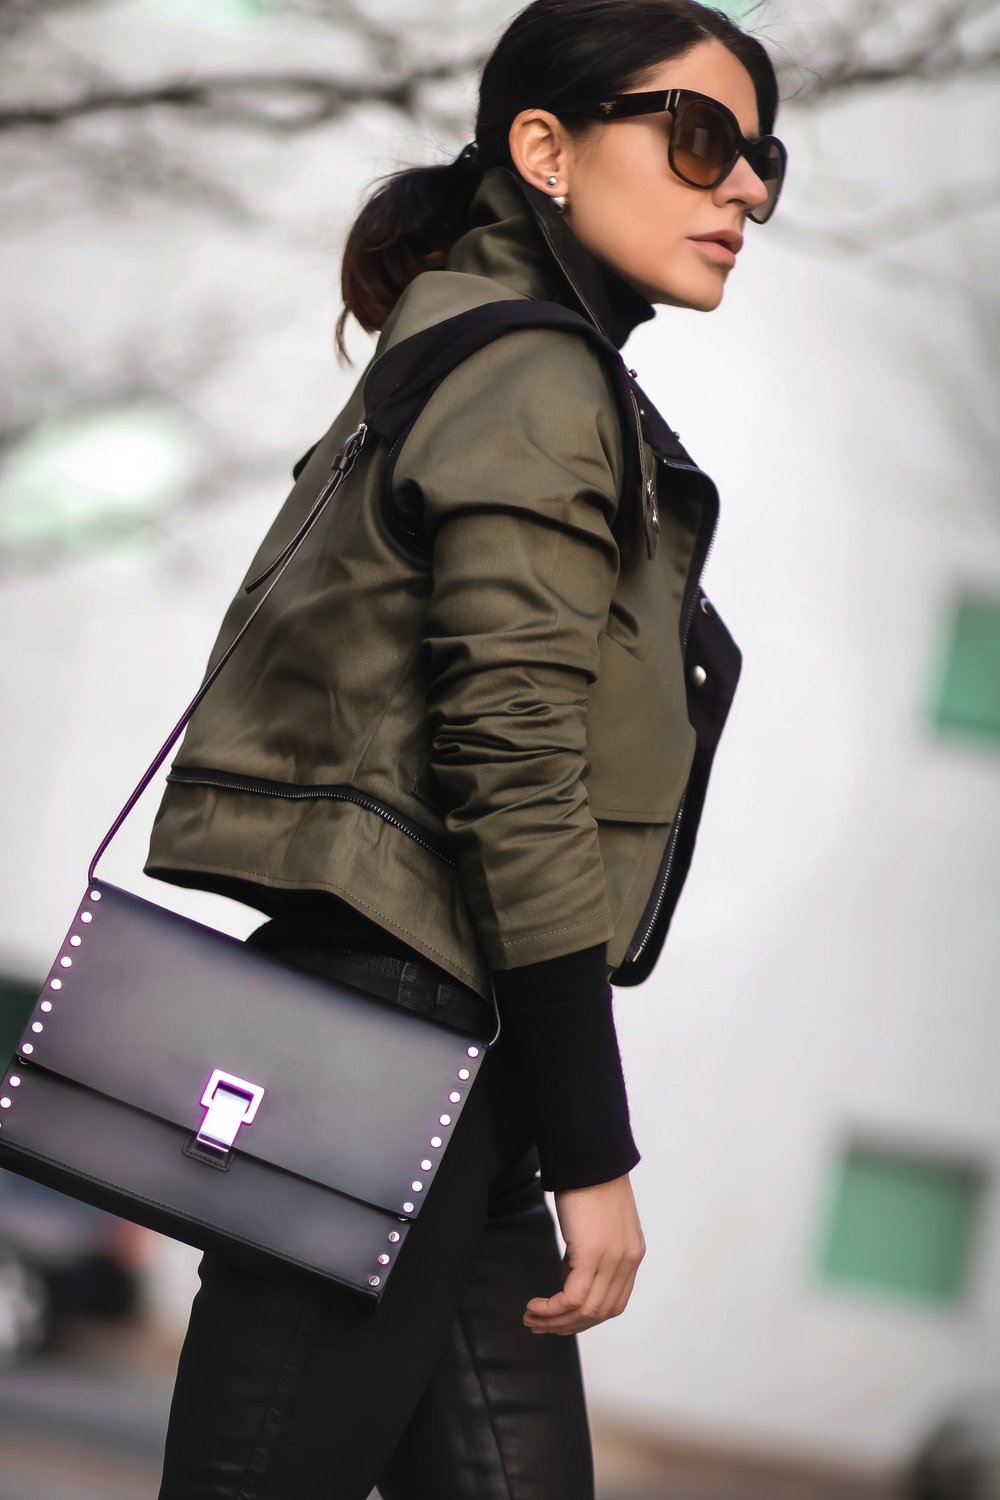 Isabel-Alexander-Clothia-jacket-side-shot-details-studded-Proenza-Schouler-bag.jpeg